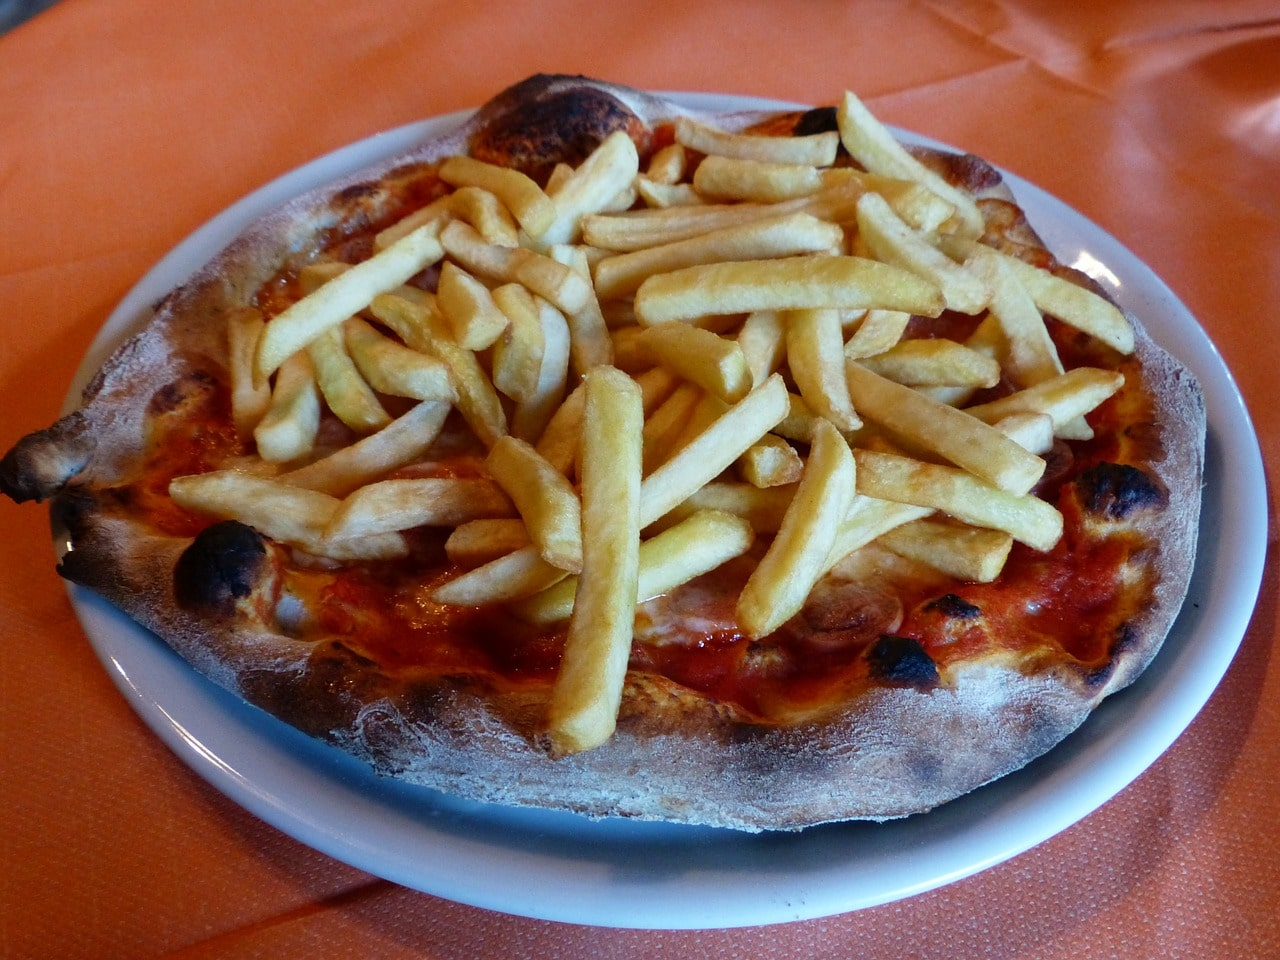 pizza and chips